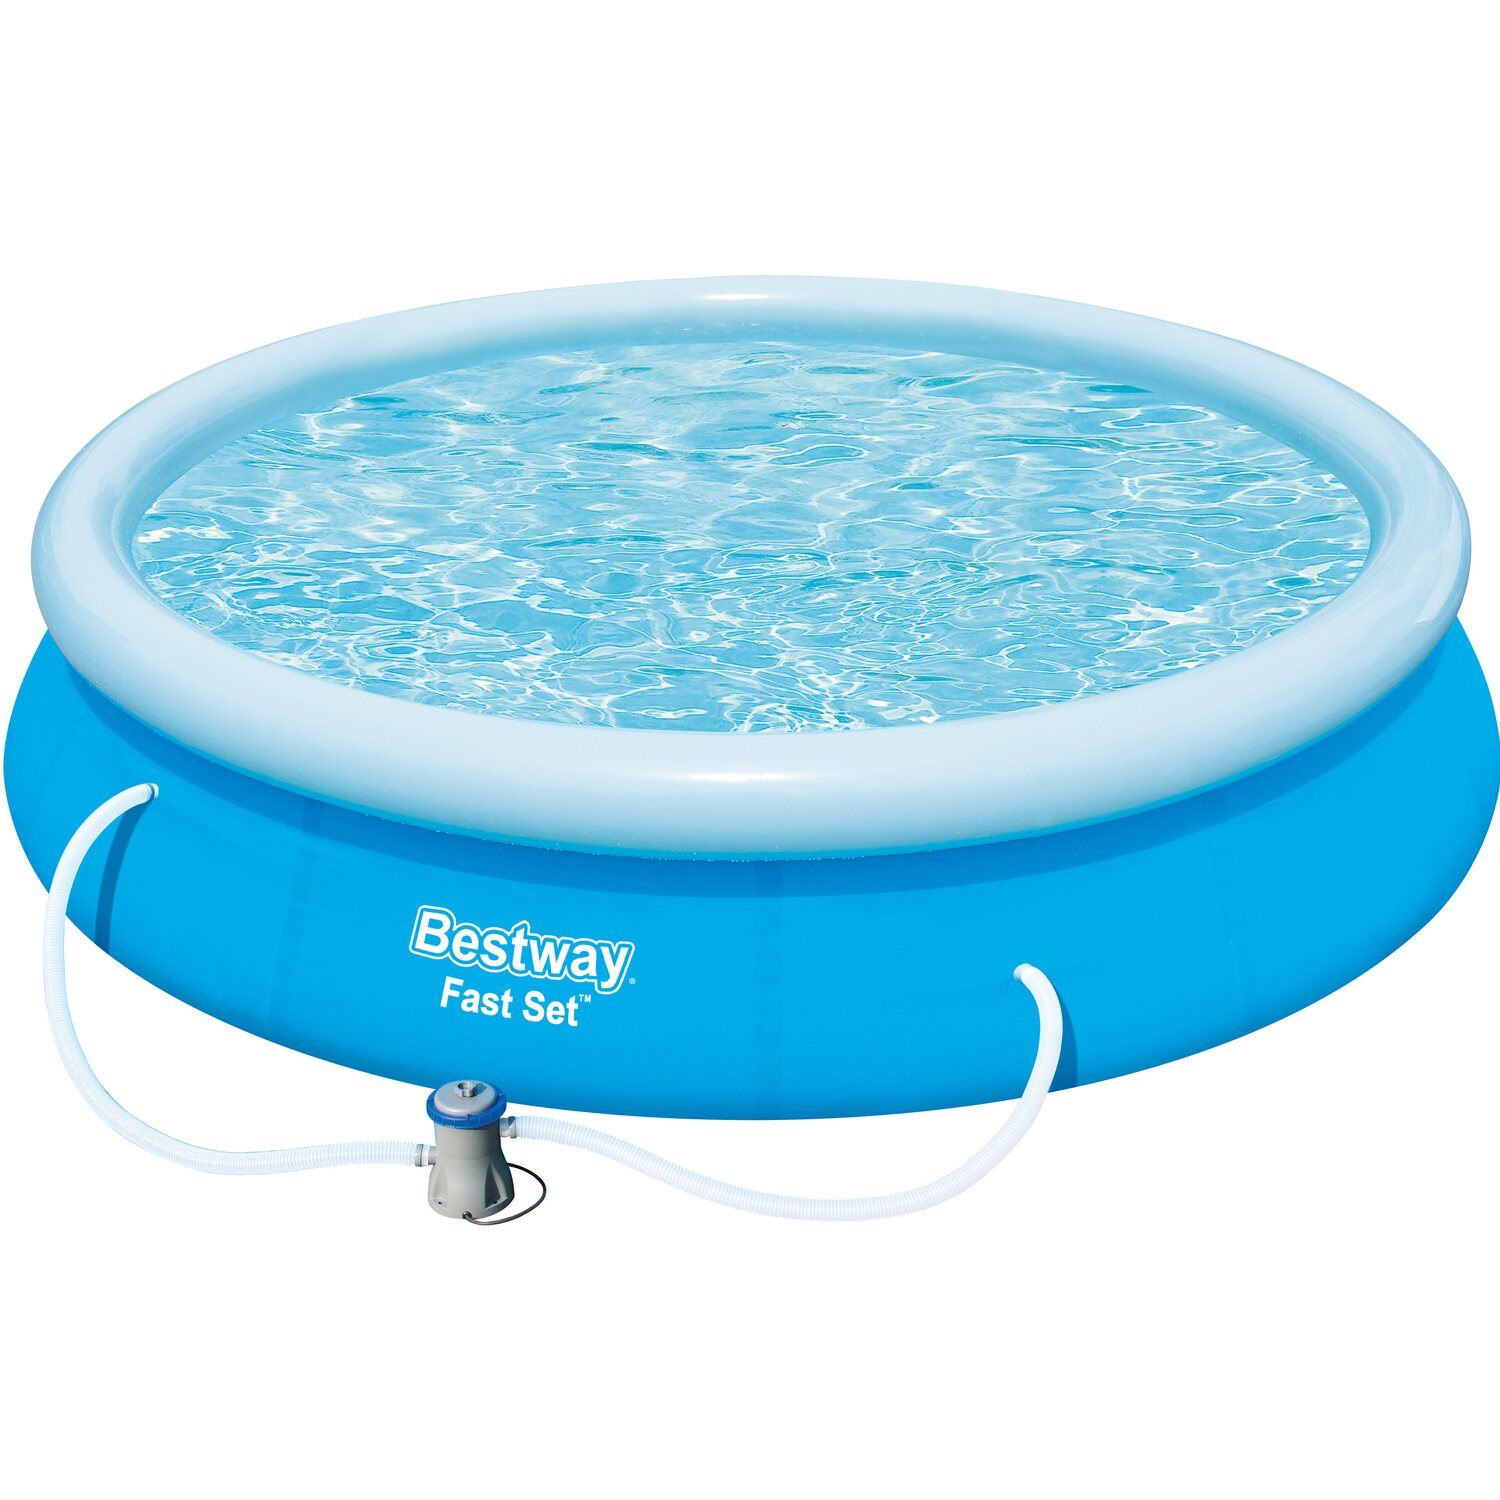 Bestway fast set pool baz nov sada 366 cm x 76 cm for Bestway pool obi